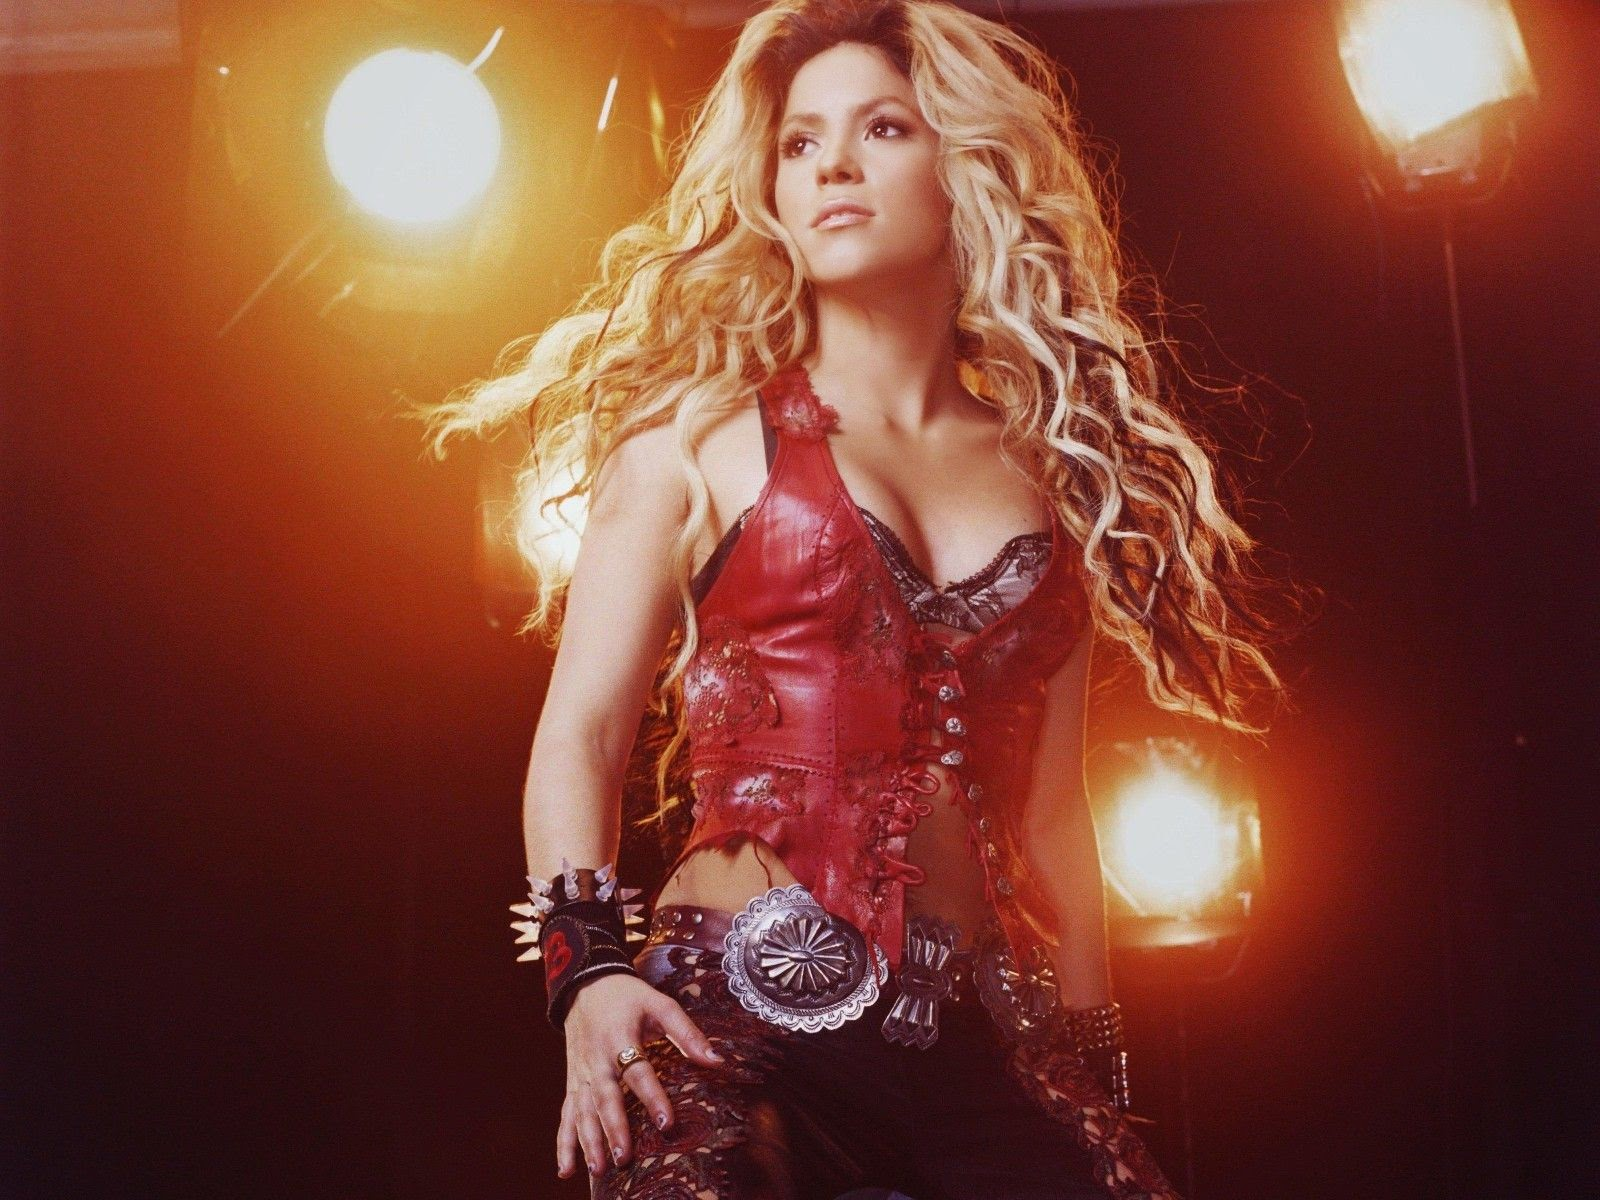 http://www.softstills.com/2014/11/shakira-hd-wallpapers-in-high-quality.html